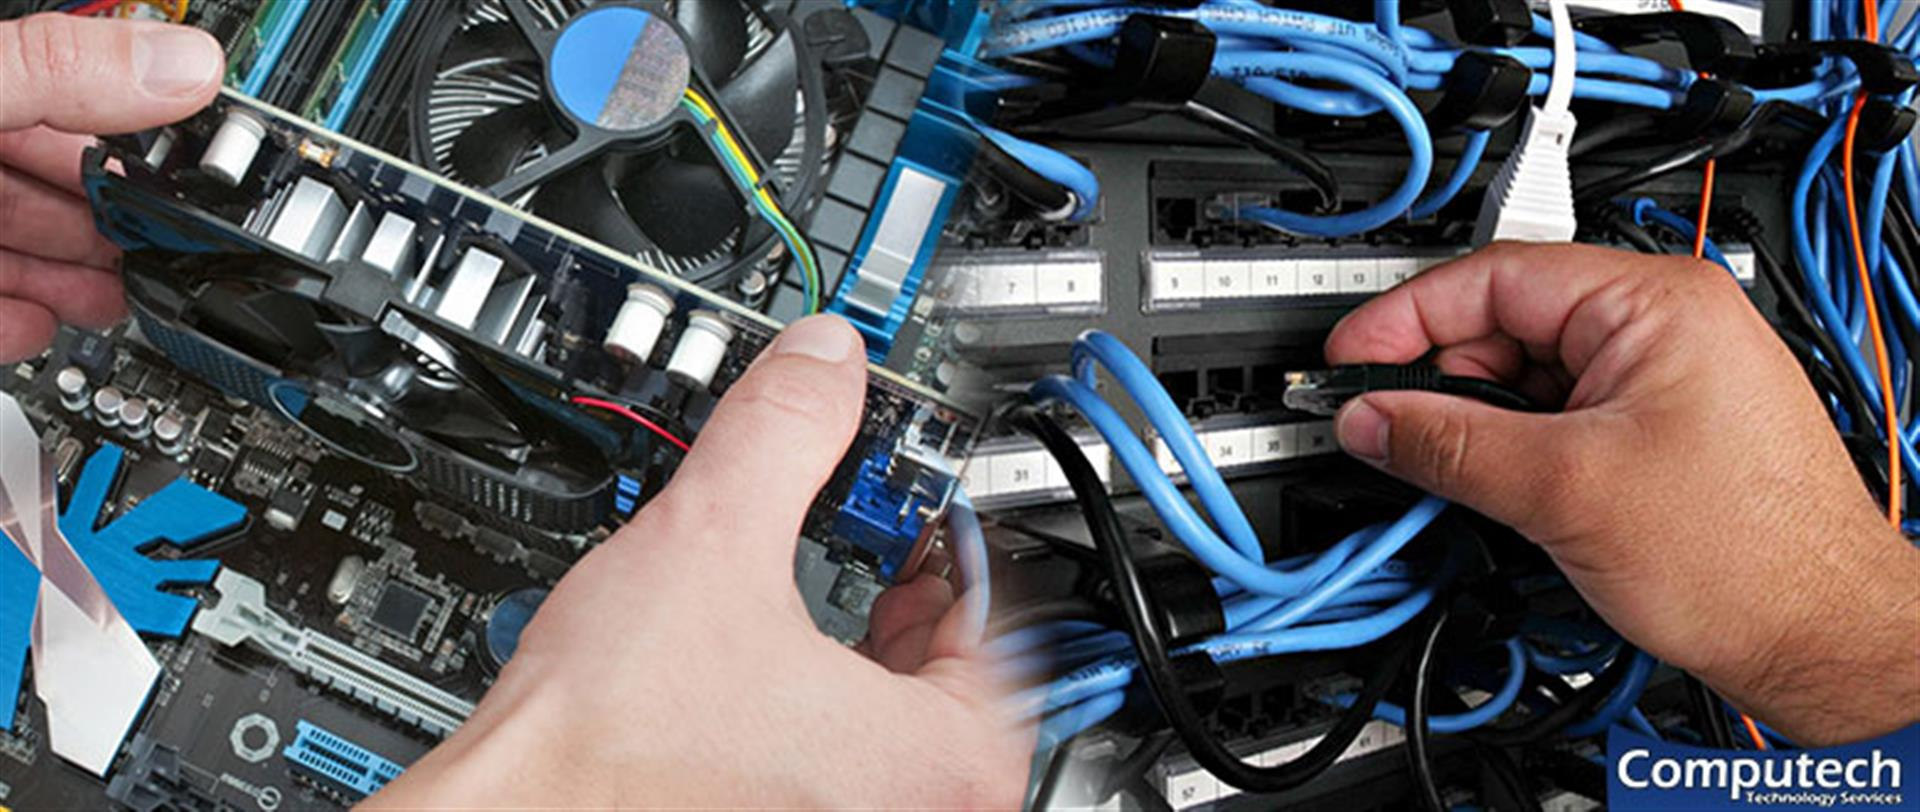 Moulton Alabama Onsite PC & Printer Repairs, Networks, Telecom & Data Low Voltage Cabling Services